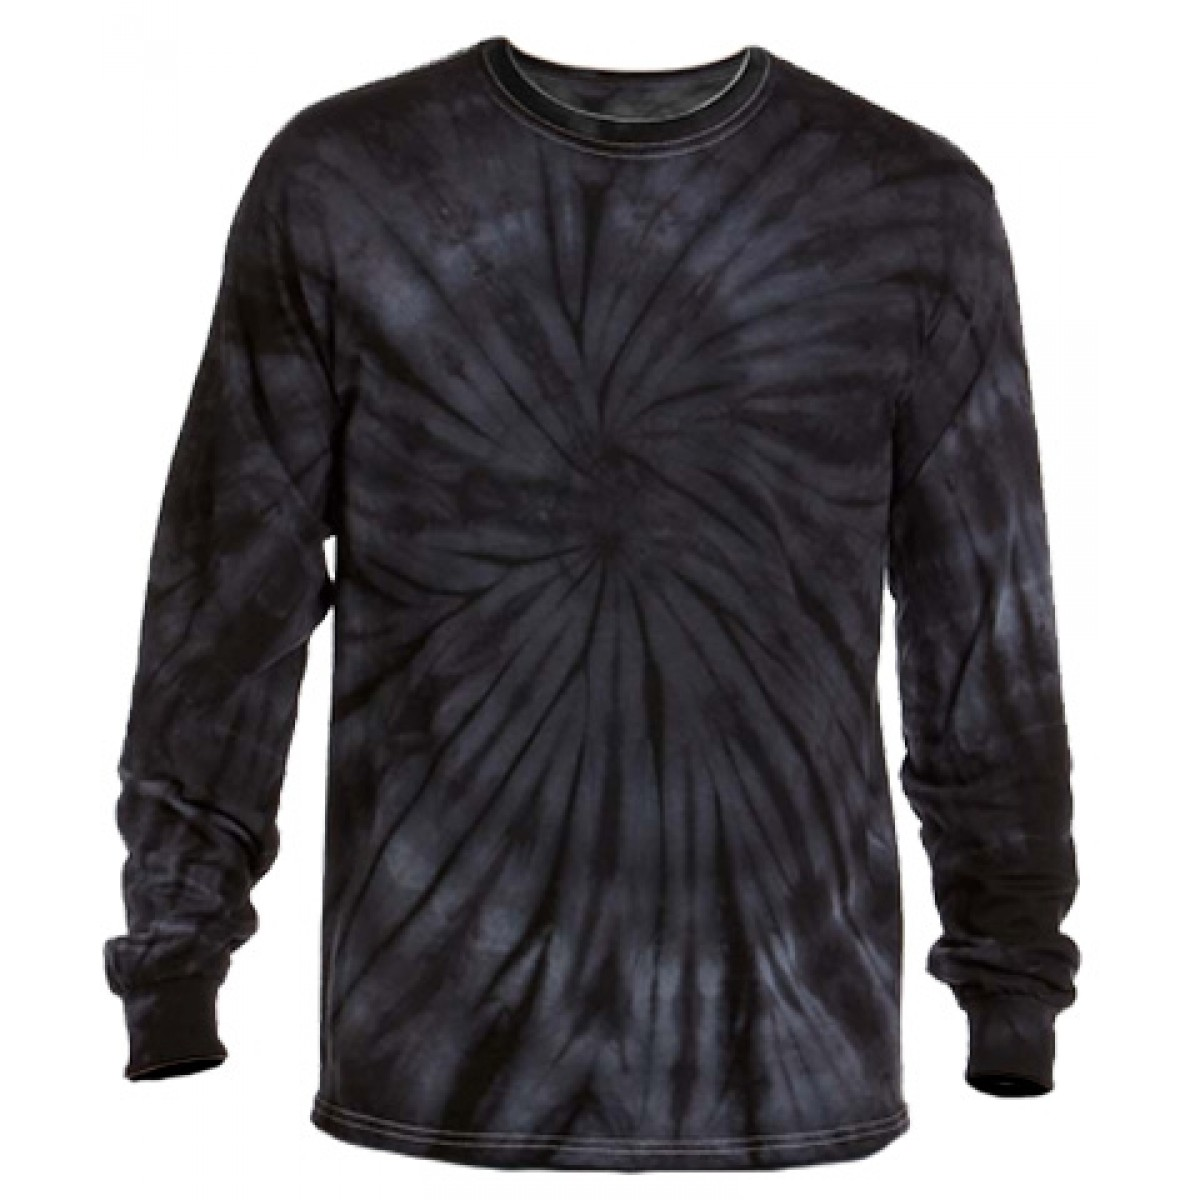 Multi Color Tie-Dye Long Sleeve Shirt -Gray -YM